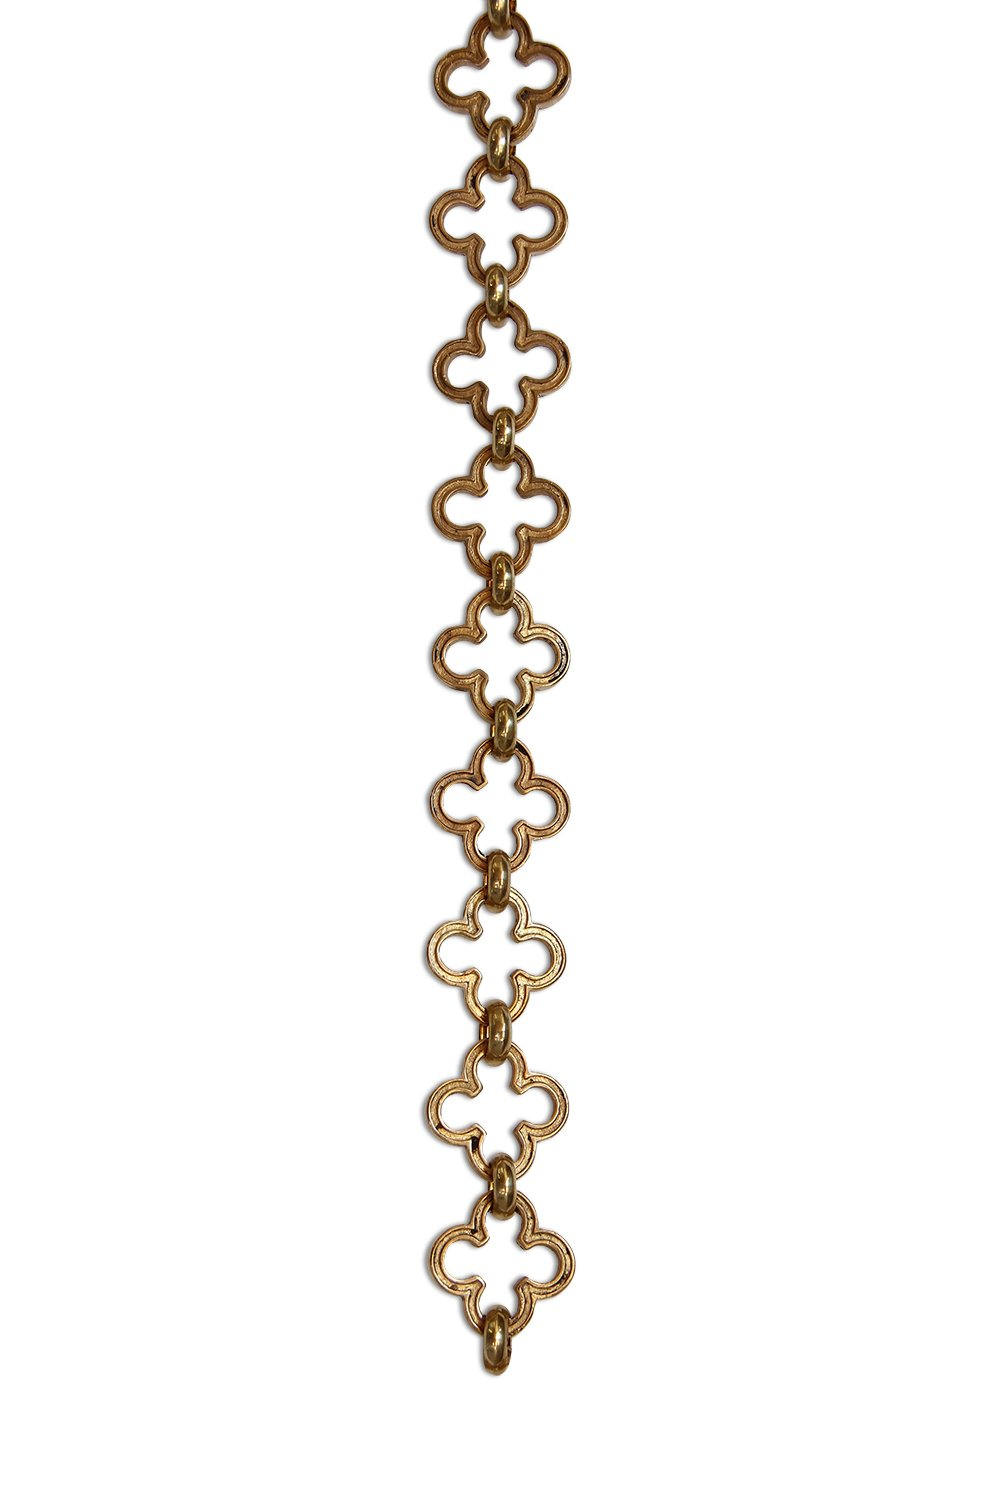 RCH Hardware Decorative Polished Solid Brass Chain for Hanging, Lighting - Cross Clover Design Unwelded Links (1 foot)